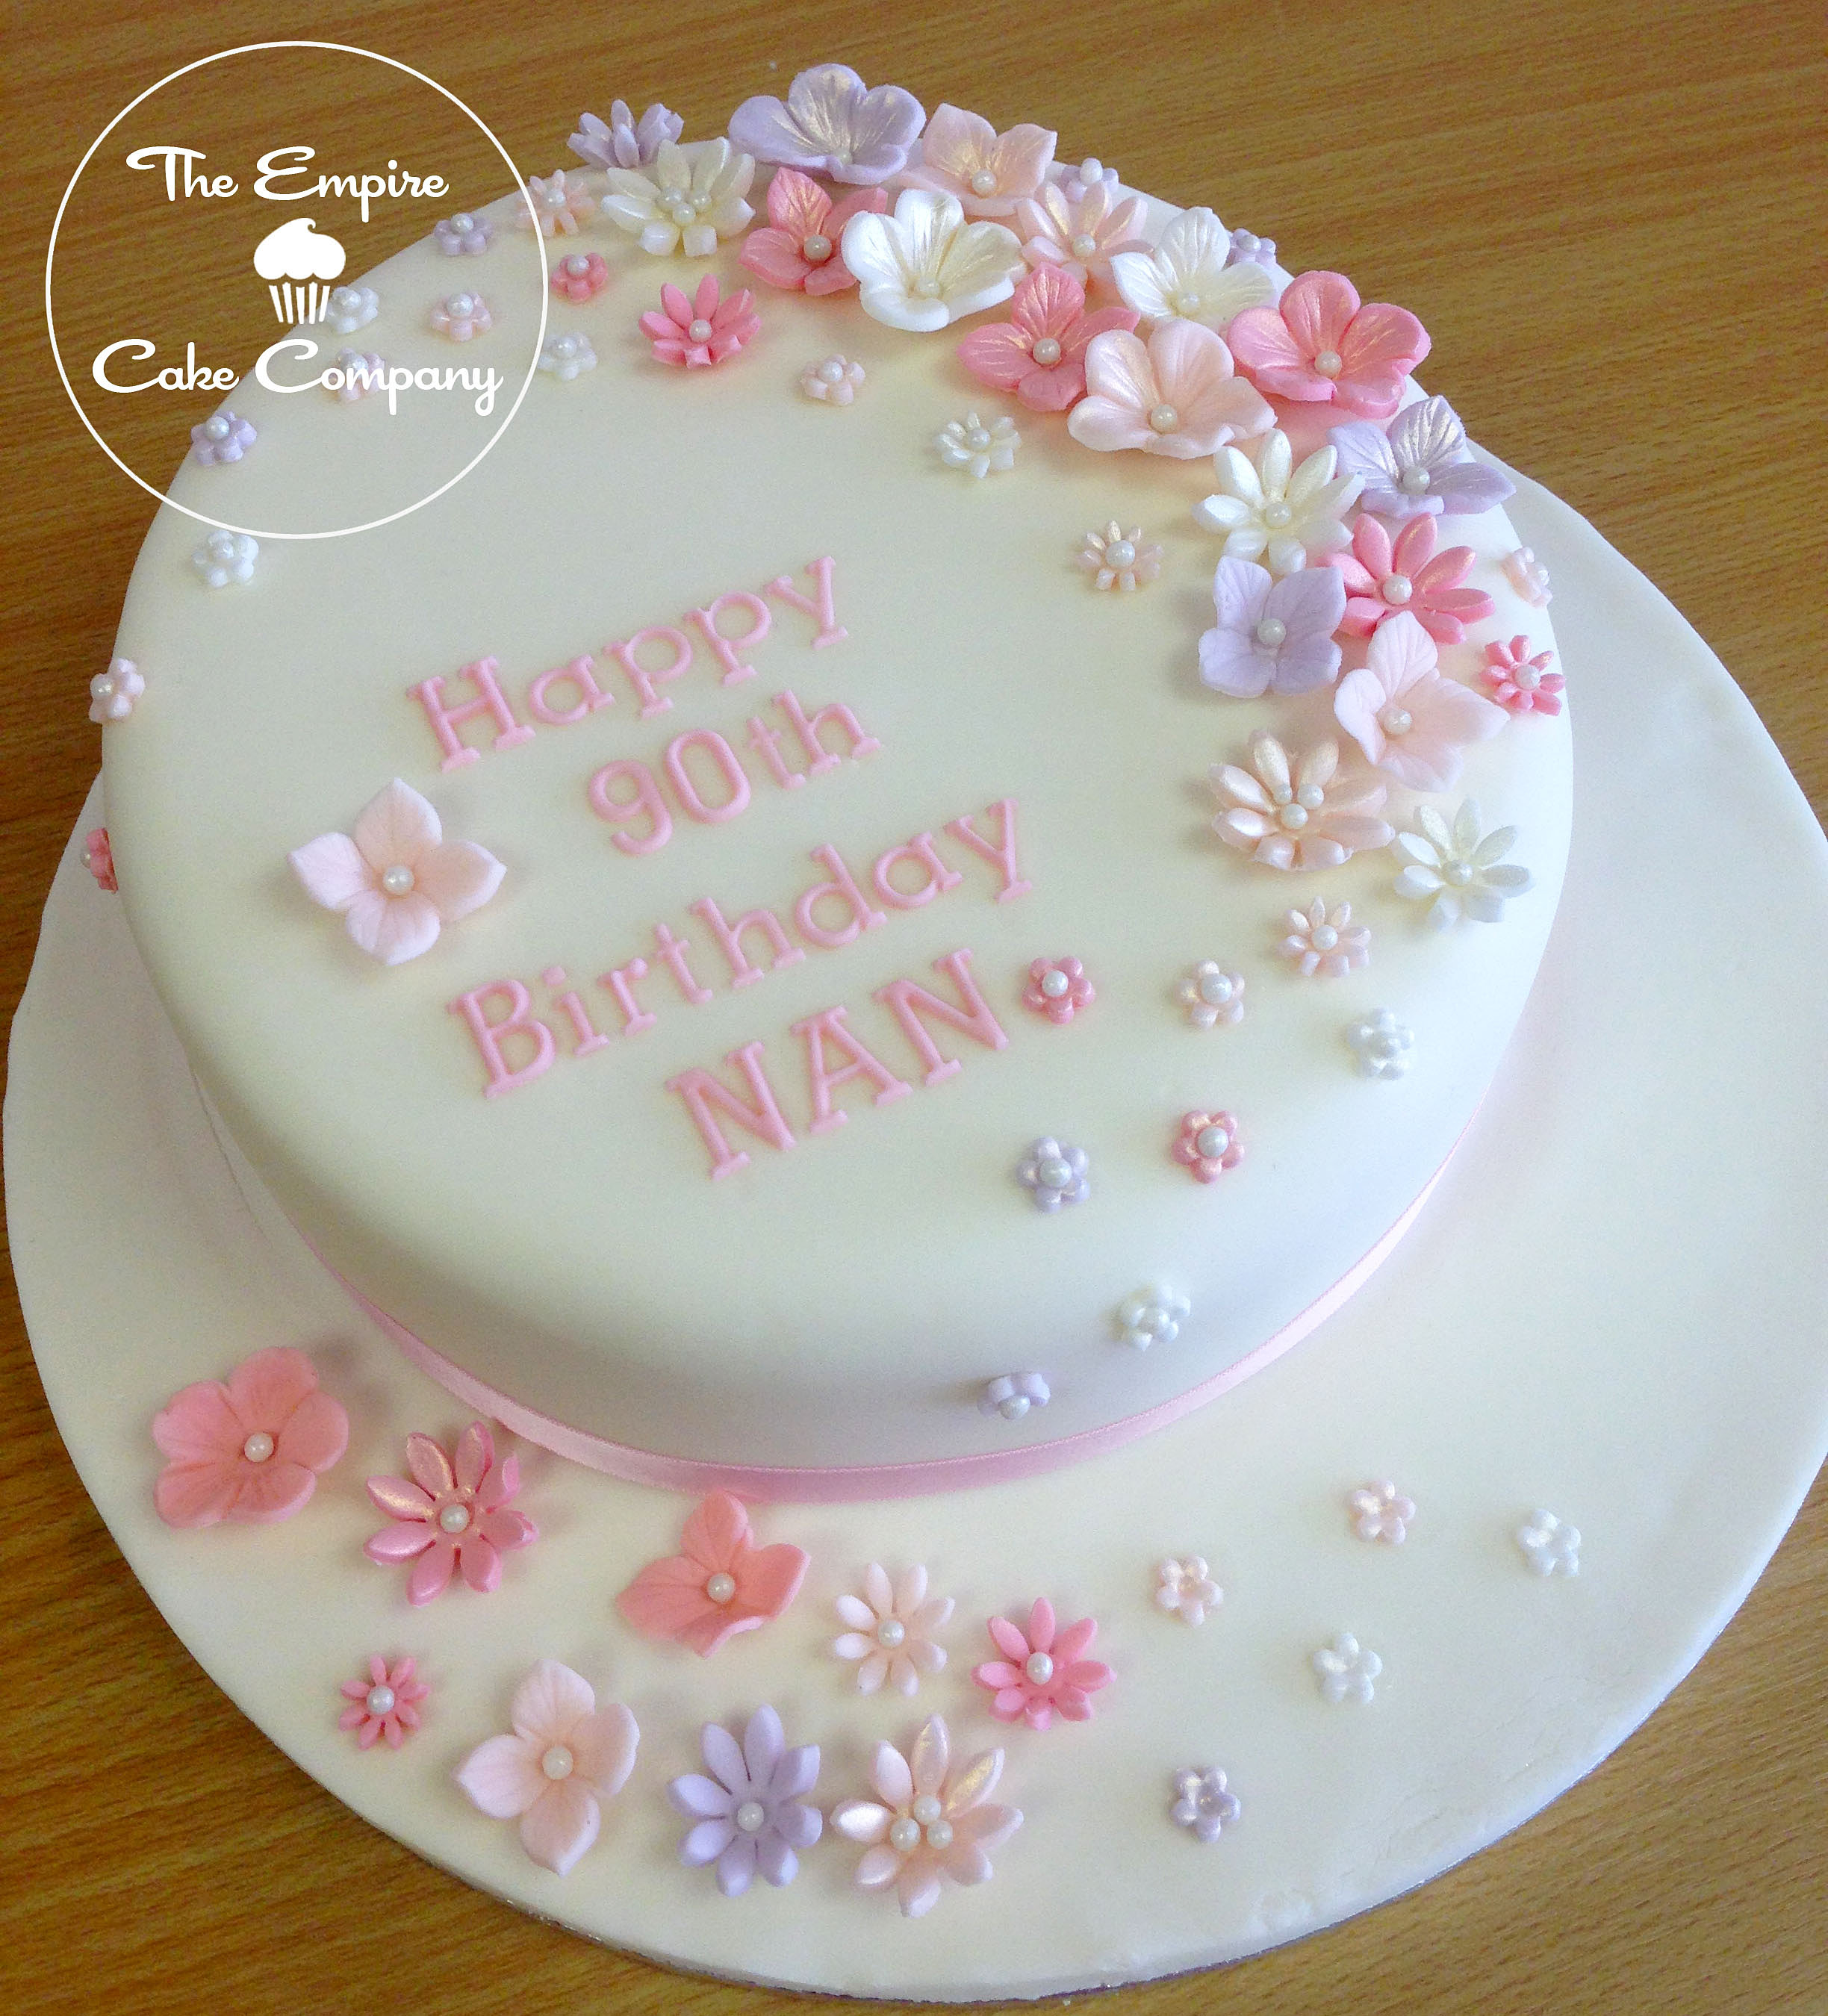 Birthday Cake Designs For A Lady : empirecakecompany Flowers 90th Birthday Cake